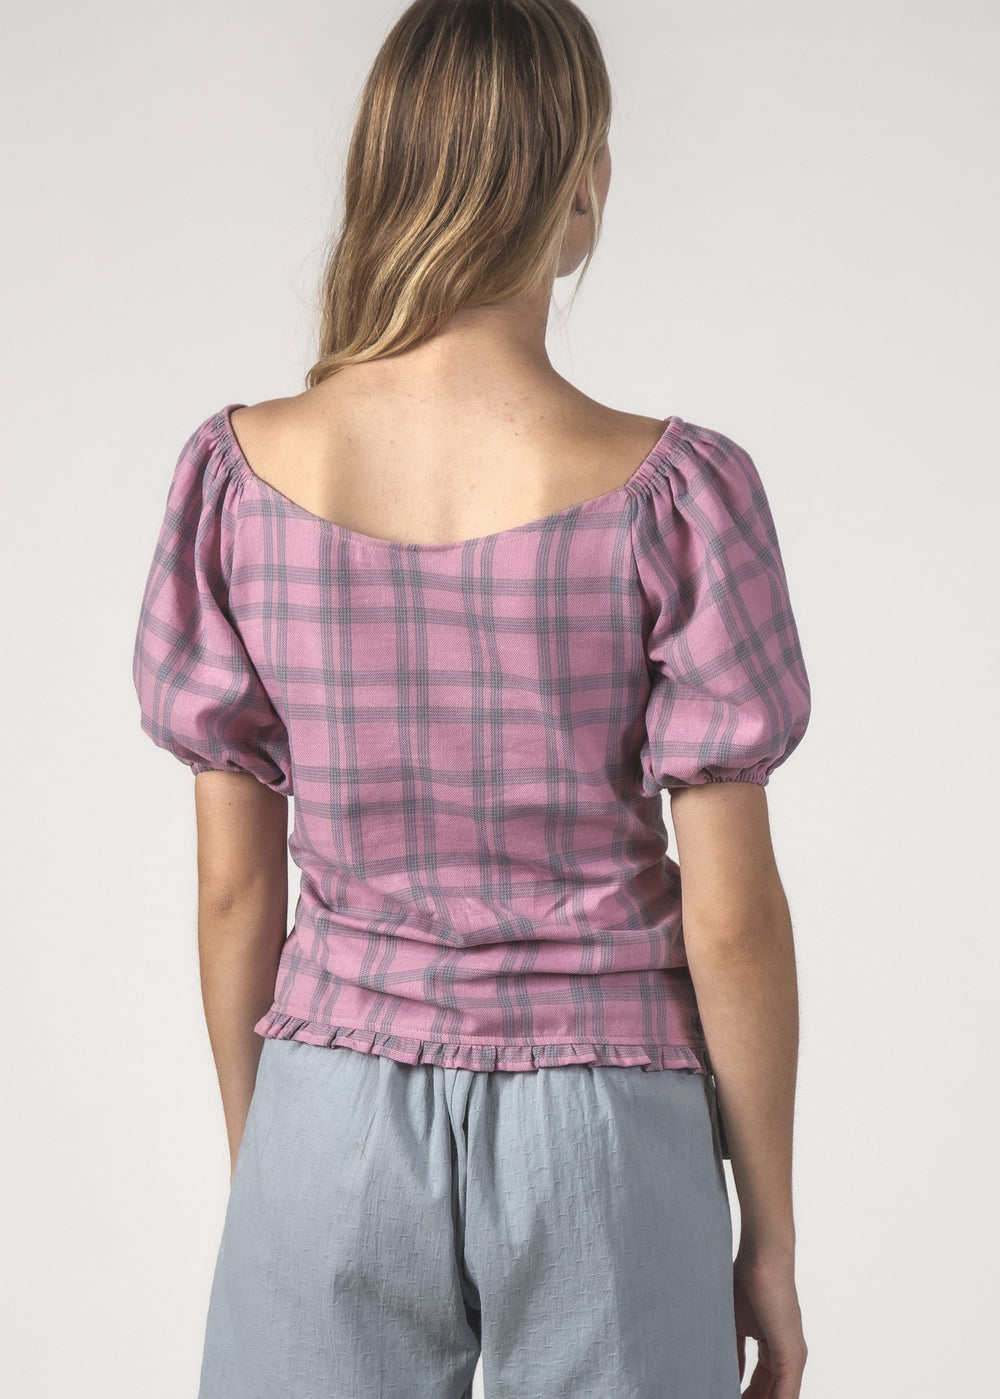 PEPPY TOP - Blush Check